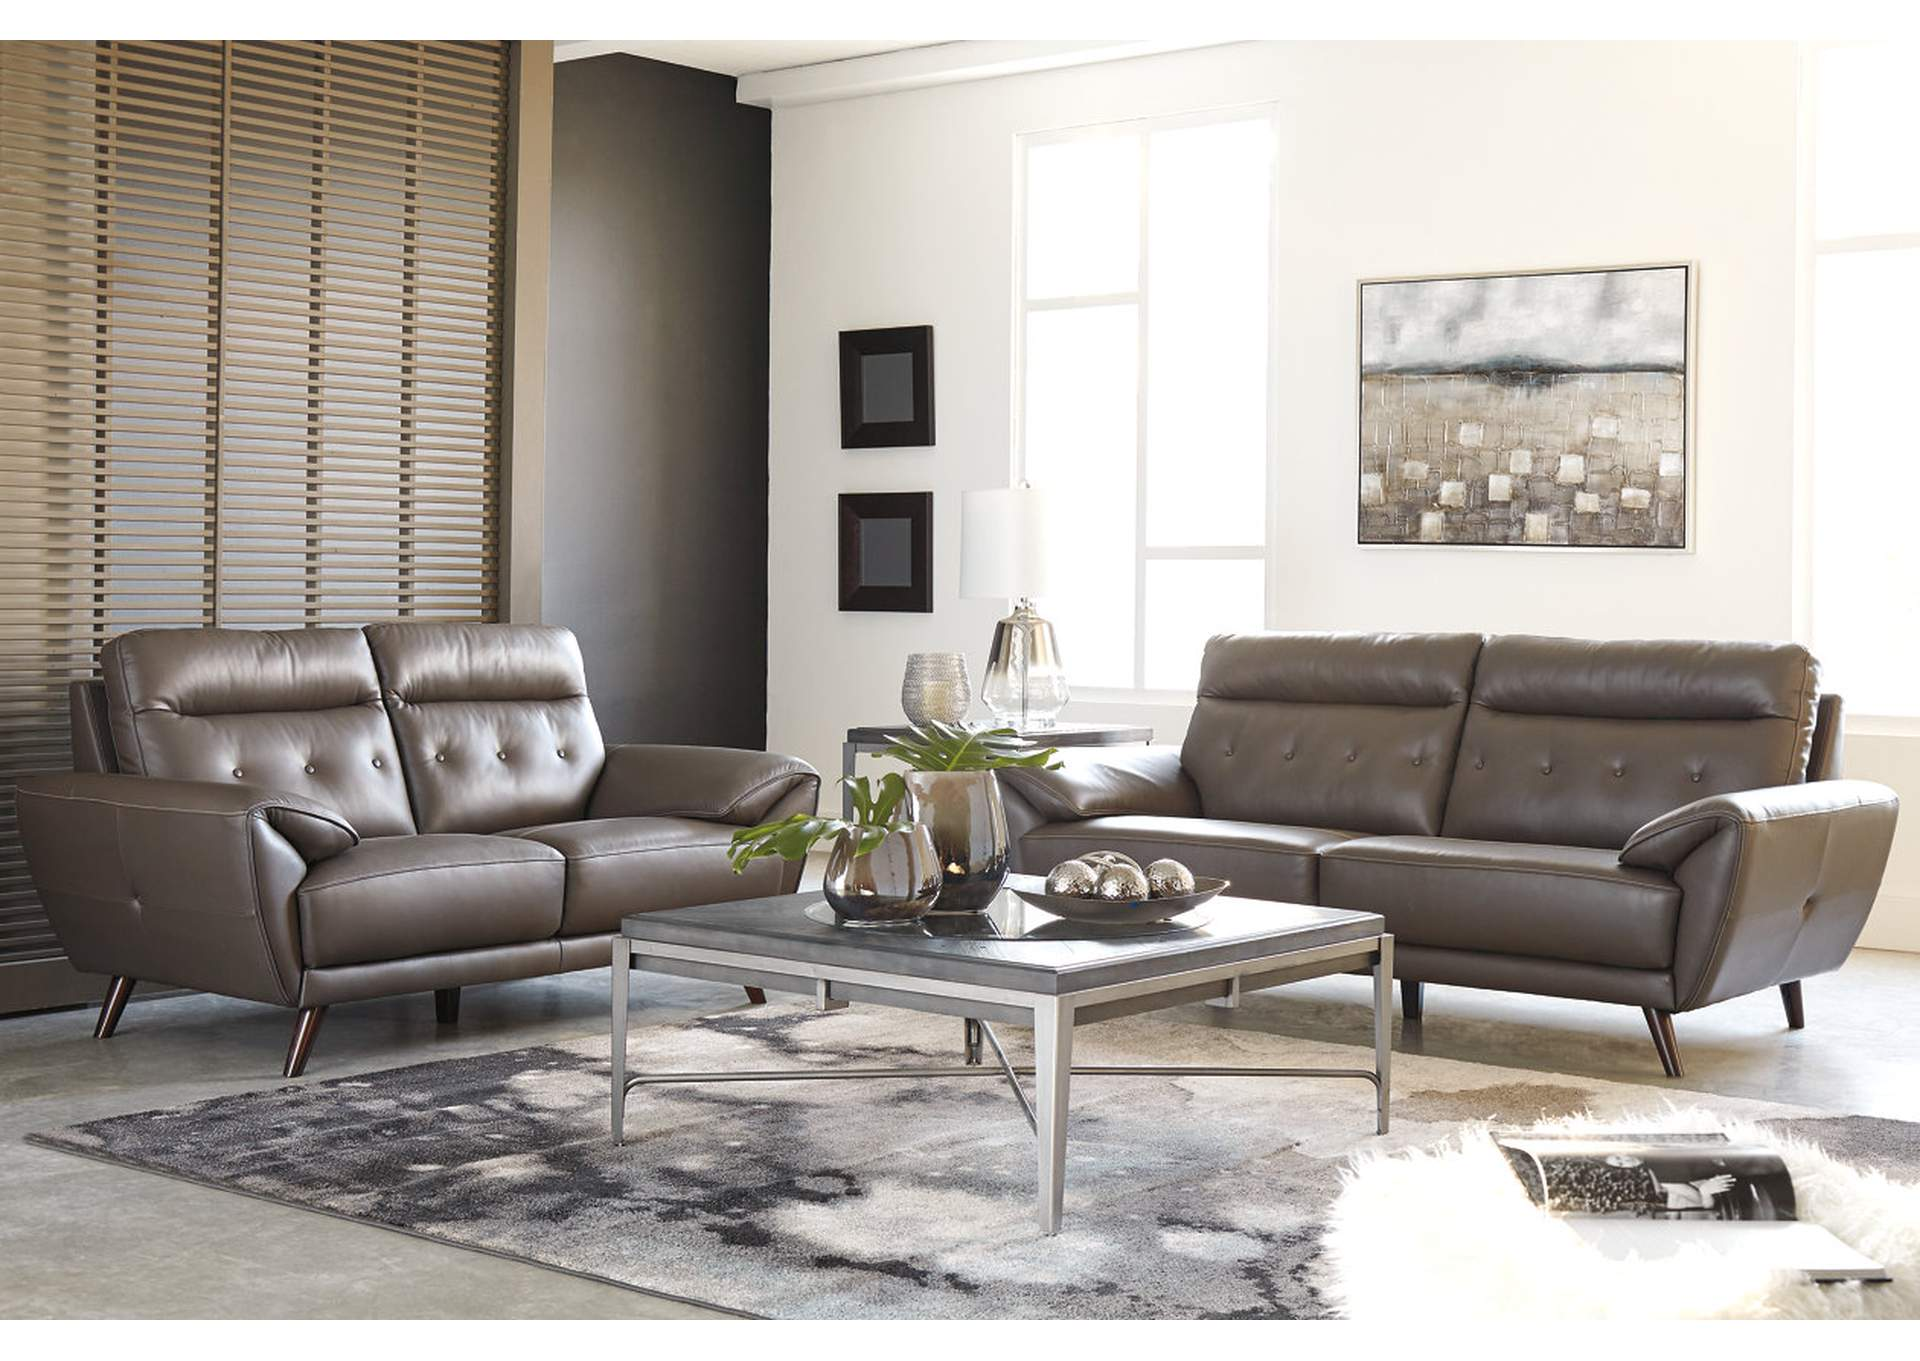 Sissoko Gray Leather Loveseat,Signature Design By Ashley